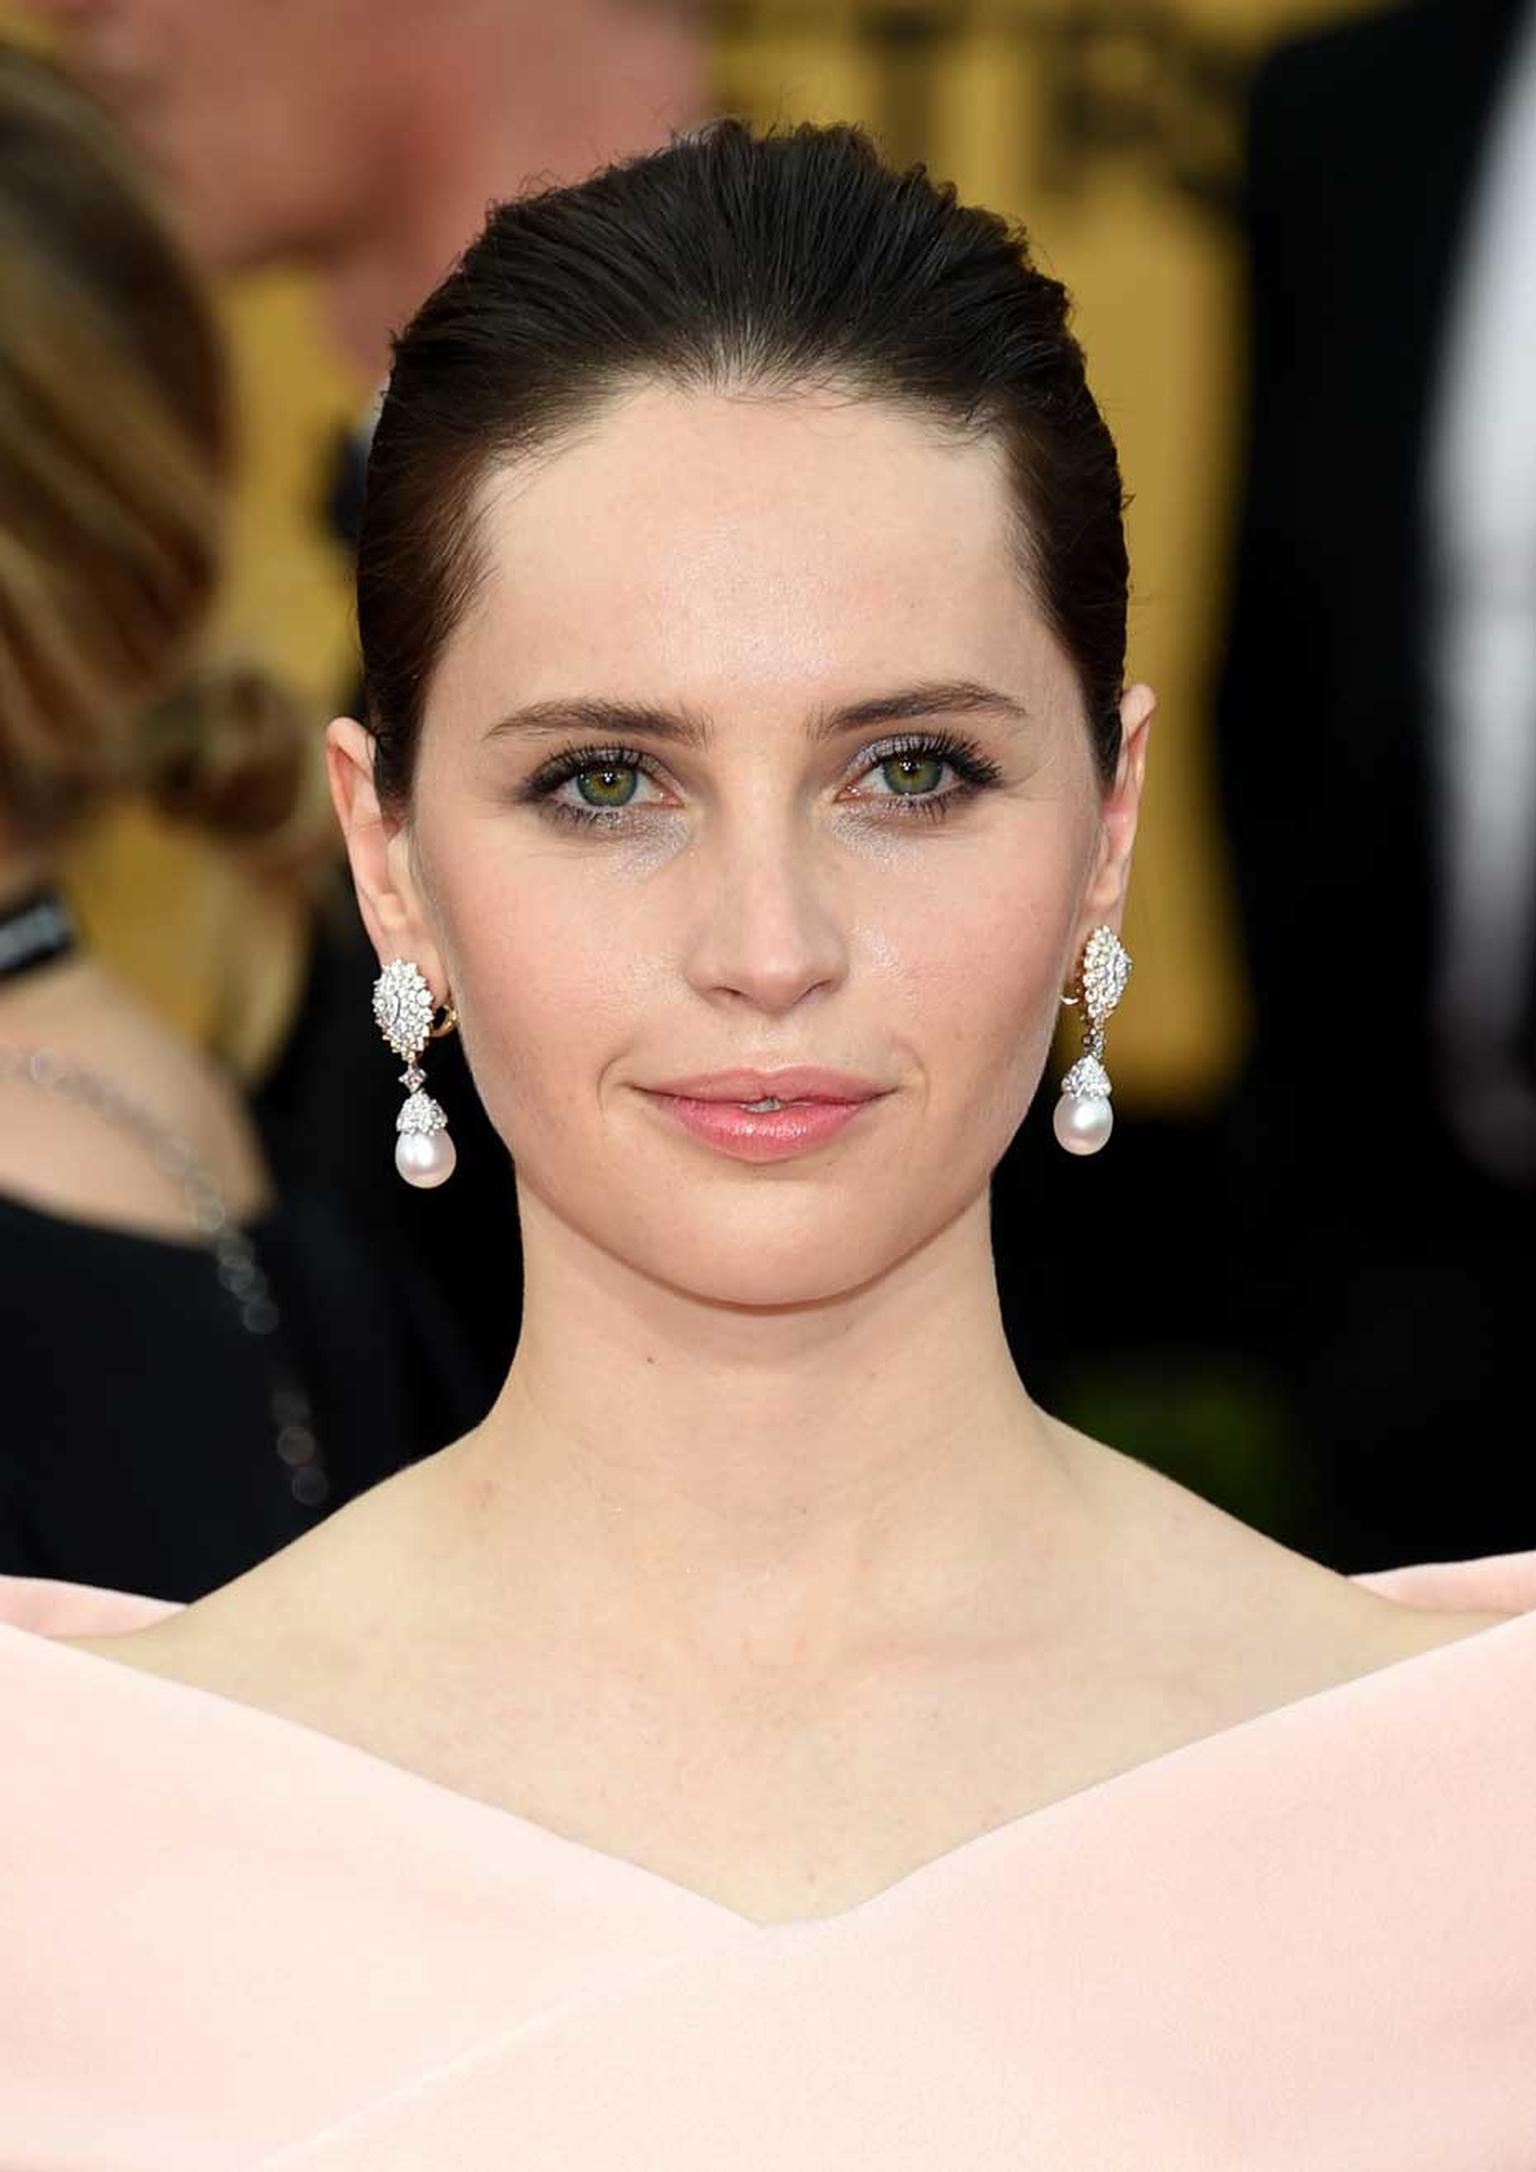 British nominee Felicity Jones sparkled in Van Cleef & Arpels jewelry on the 2015 SAG Awards red carpet. (Ethan Miller/Getty Images)